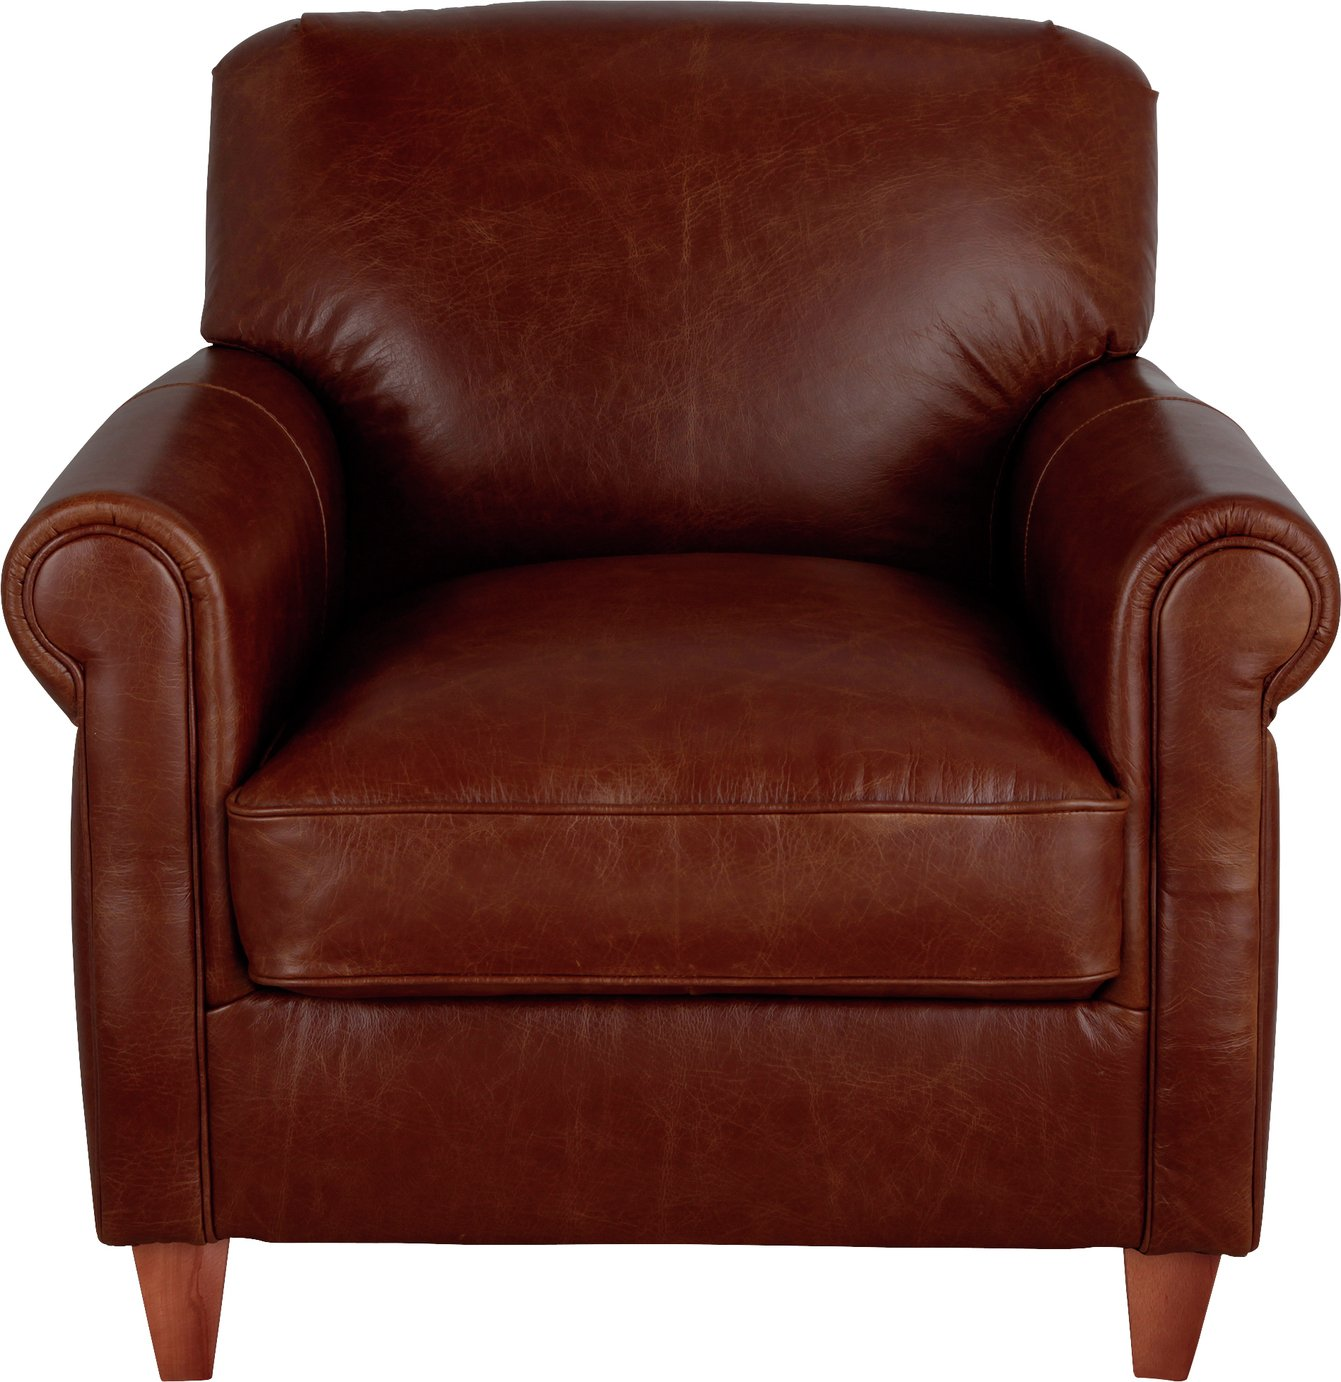 Argos Home Kingsley Leather Accent Chair - Tan